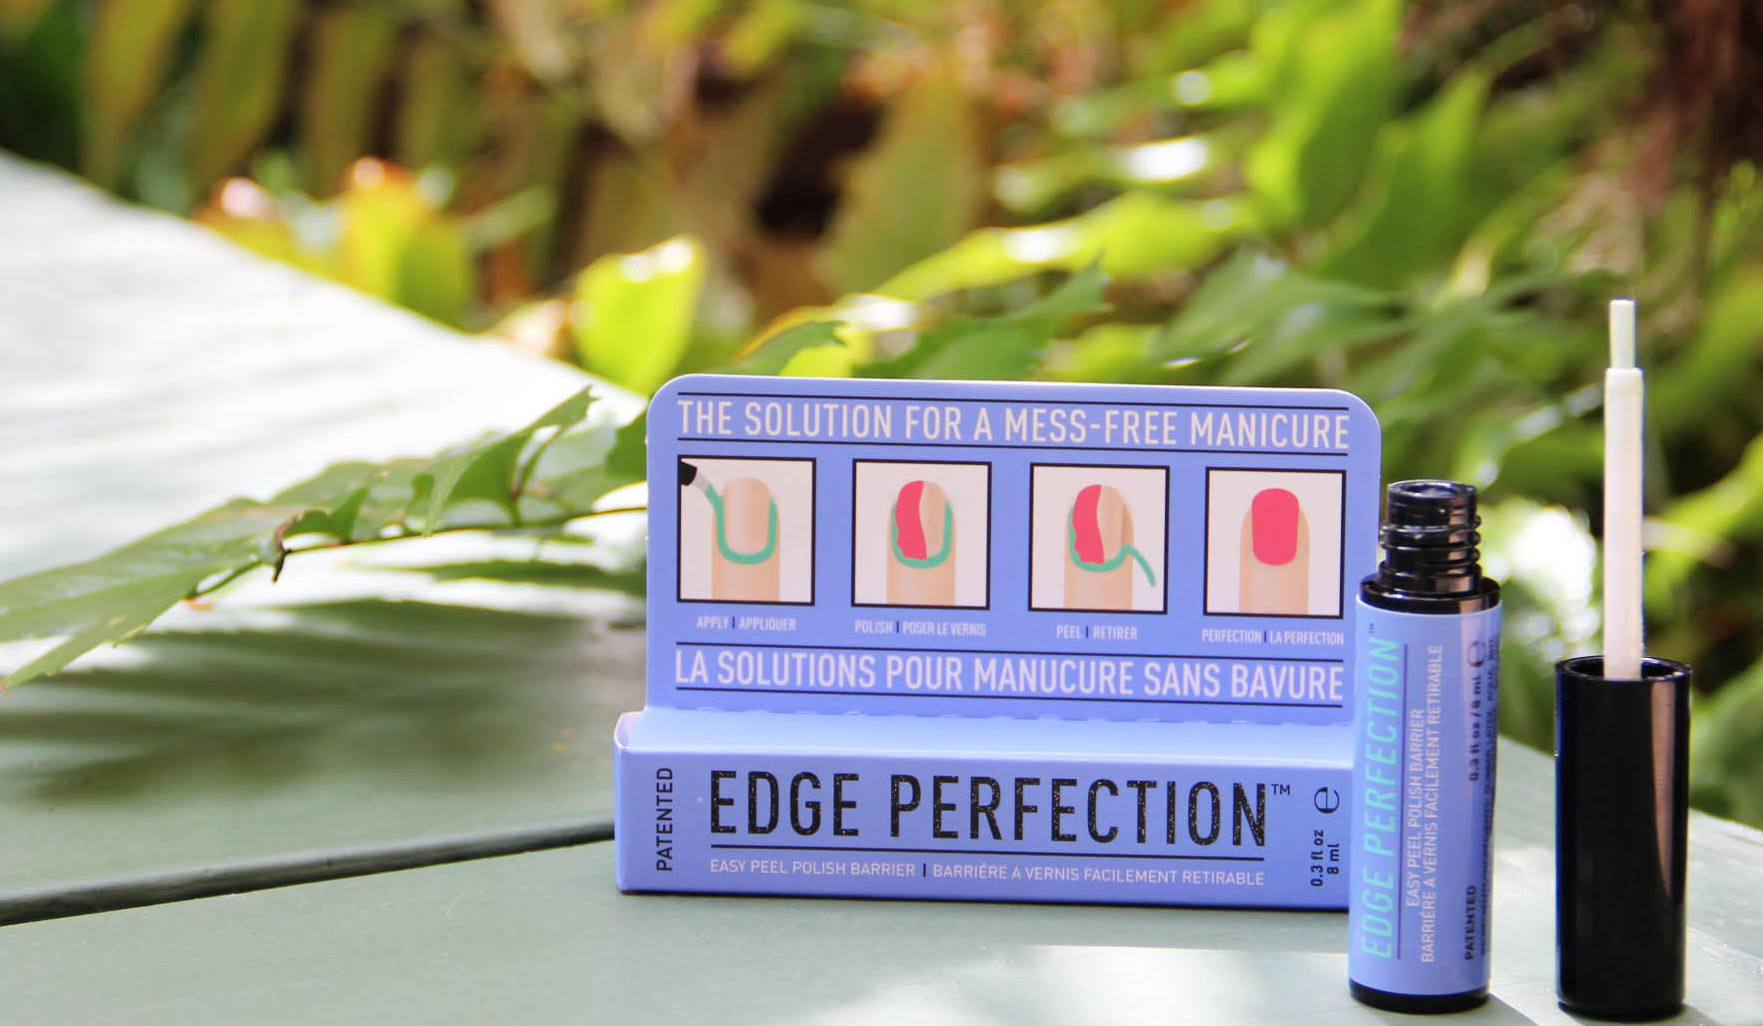 Edge Perfection review